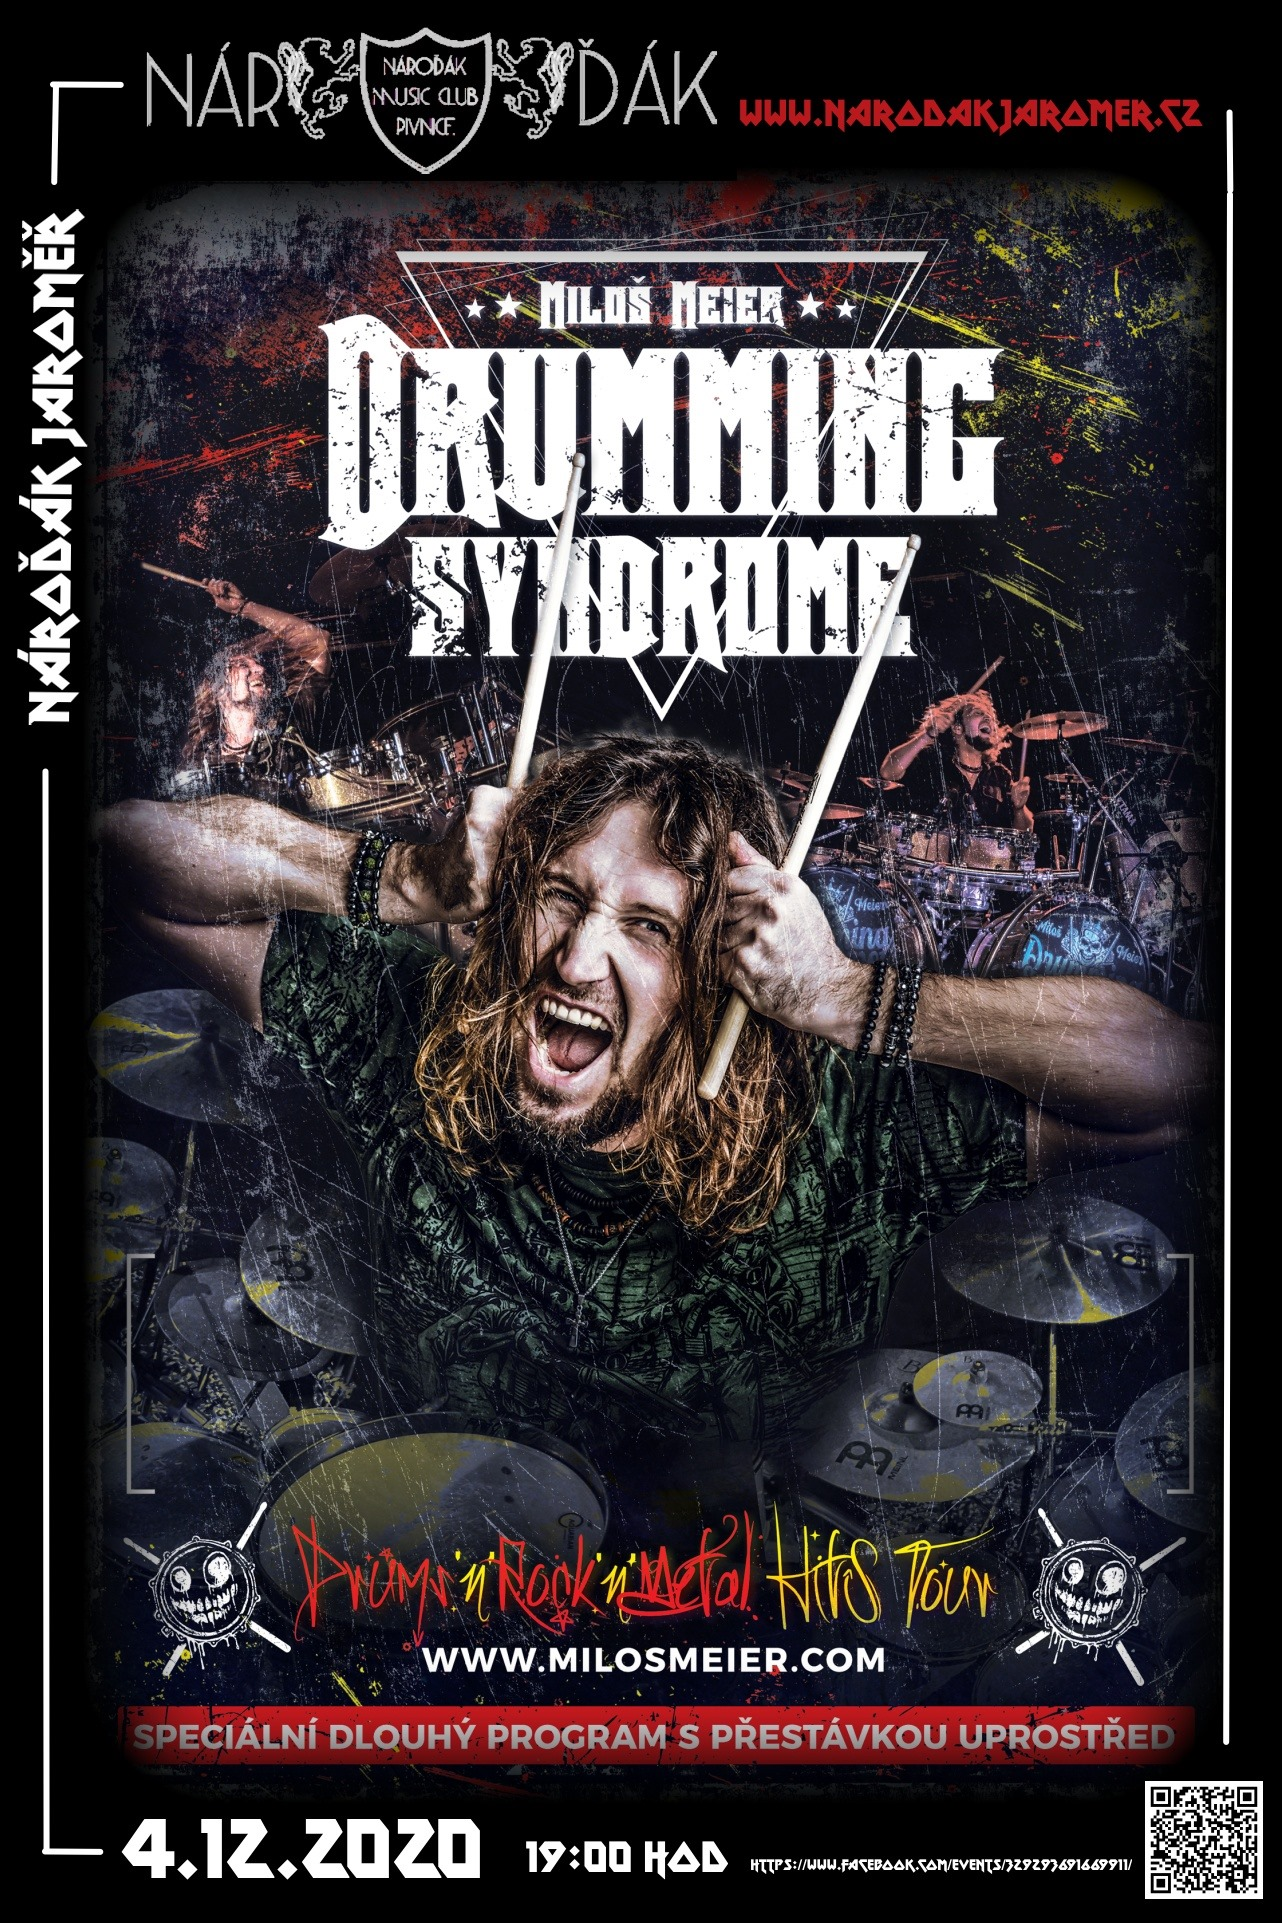 4.12.2020 Miloš Meier: Drumming Syndrome